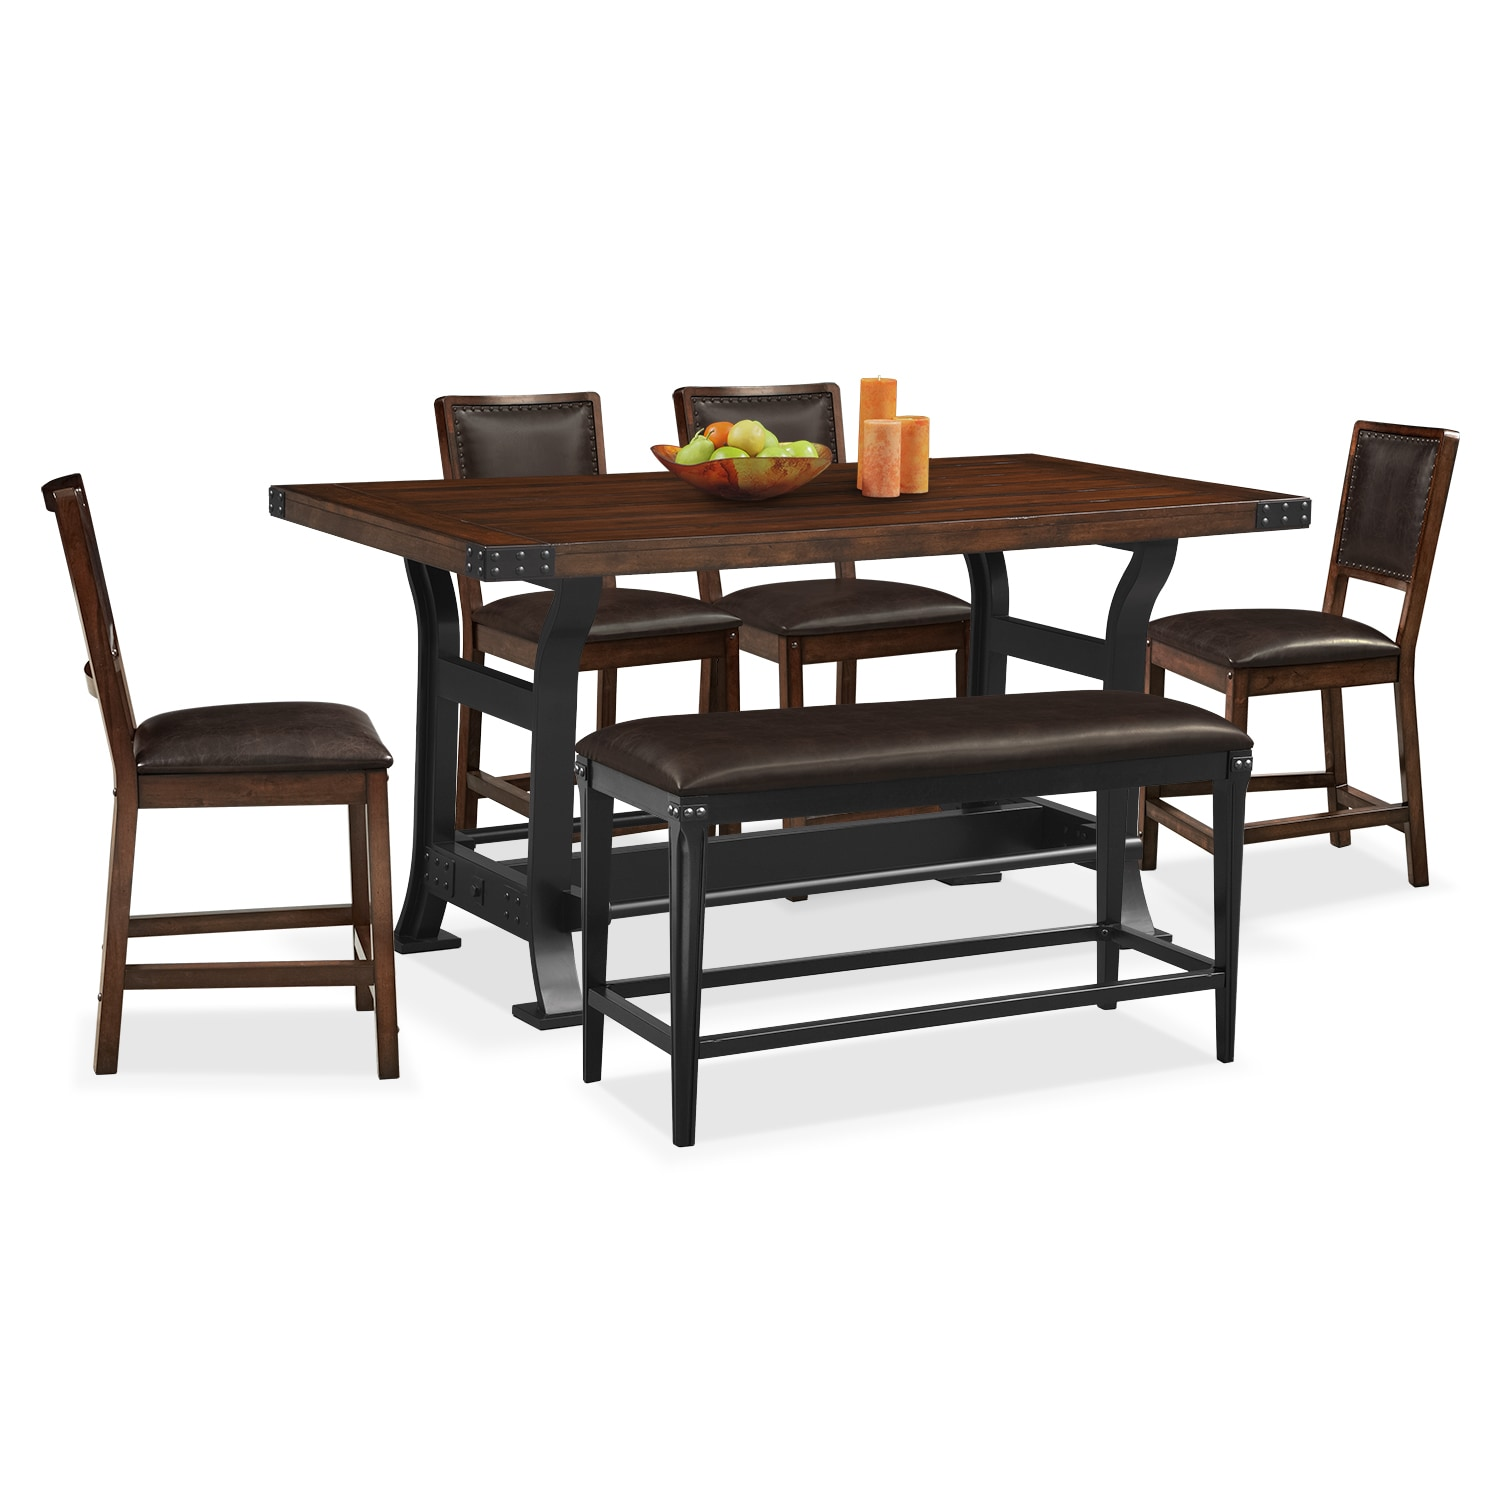 Dining Room Furniture   Newcastle Counter Height Dining Table, 4 Side Chairs  And Bench